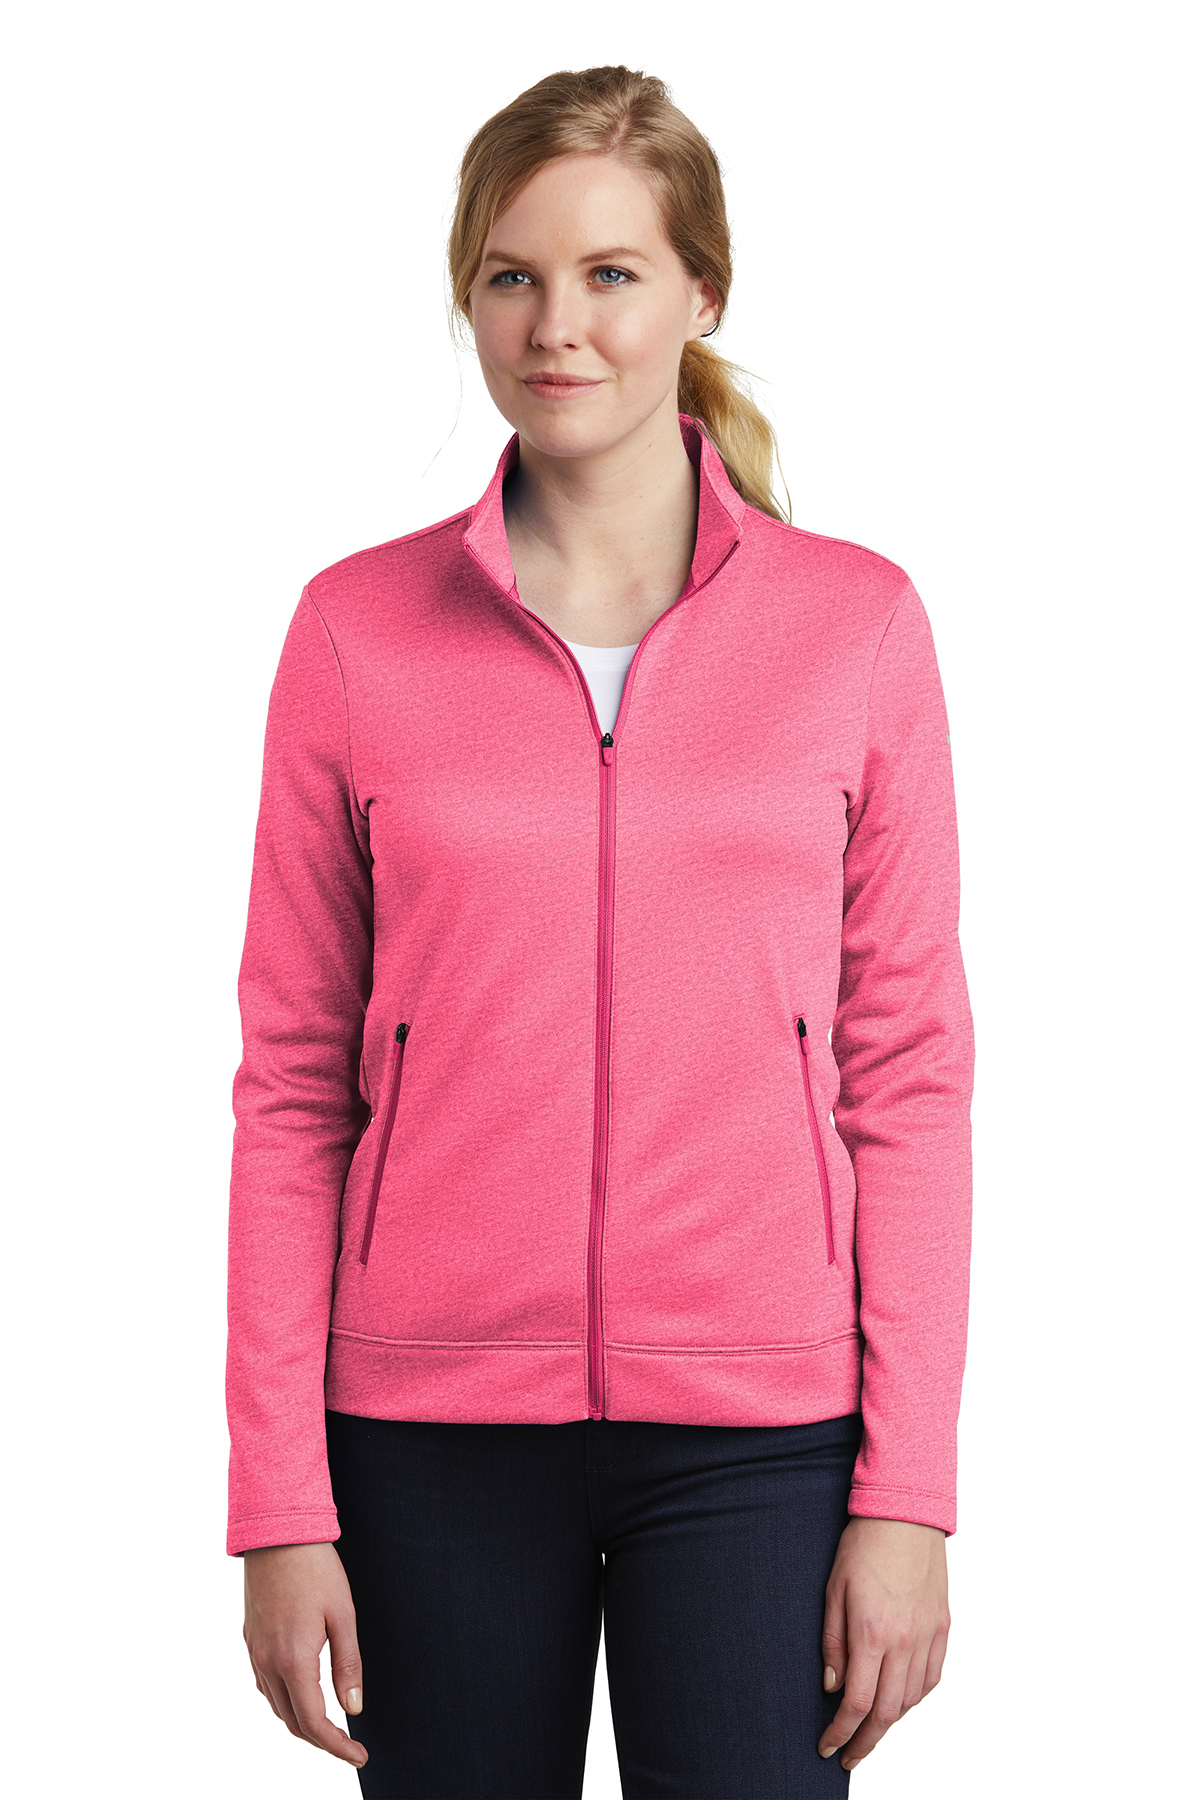 Nike Golf NKAH6260 - Ladies Therma-FIT Full Zip Fleece